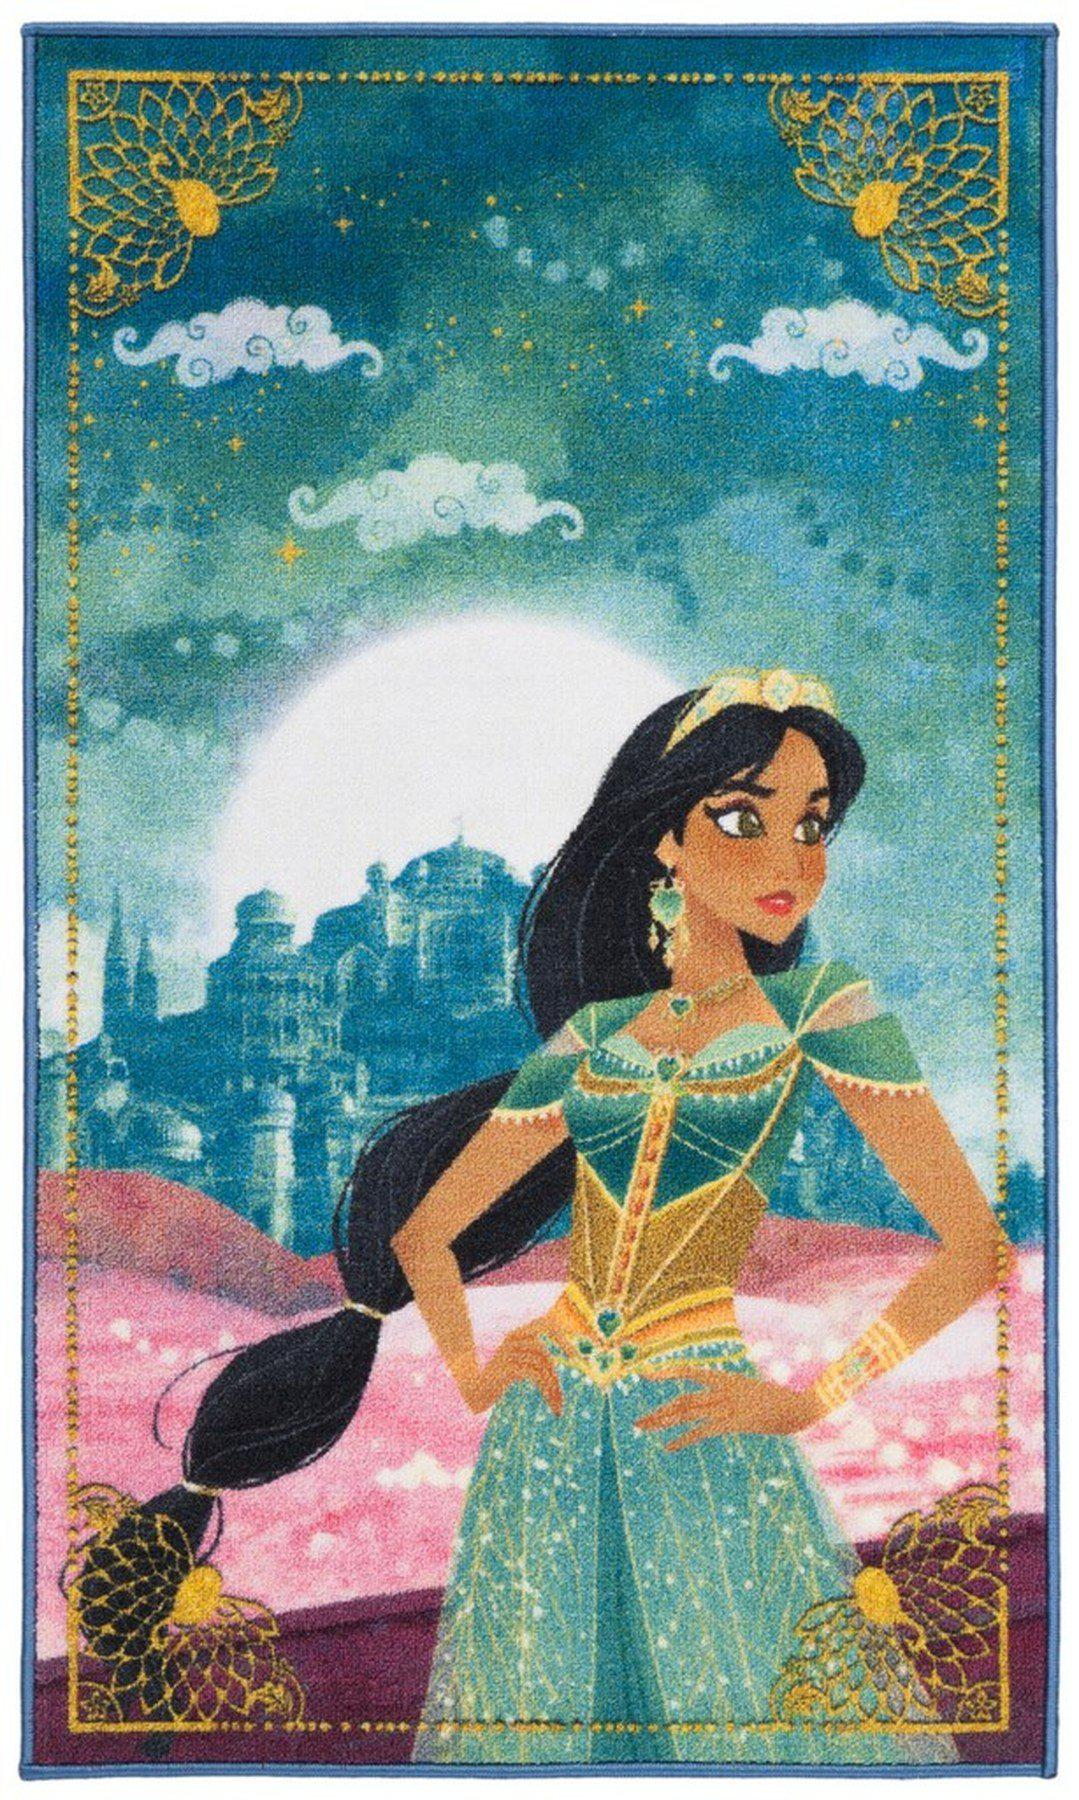 "Safavieh Collection Inspired by Disney's Live Action Film Aladdin - Free To Dream Rug, Turquoise / Pink-Area Rug-Safavieh-2' 3"" X 3' 9""-The Rug Truck"